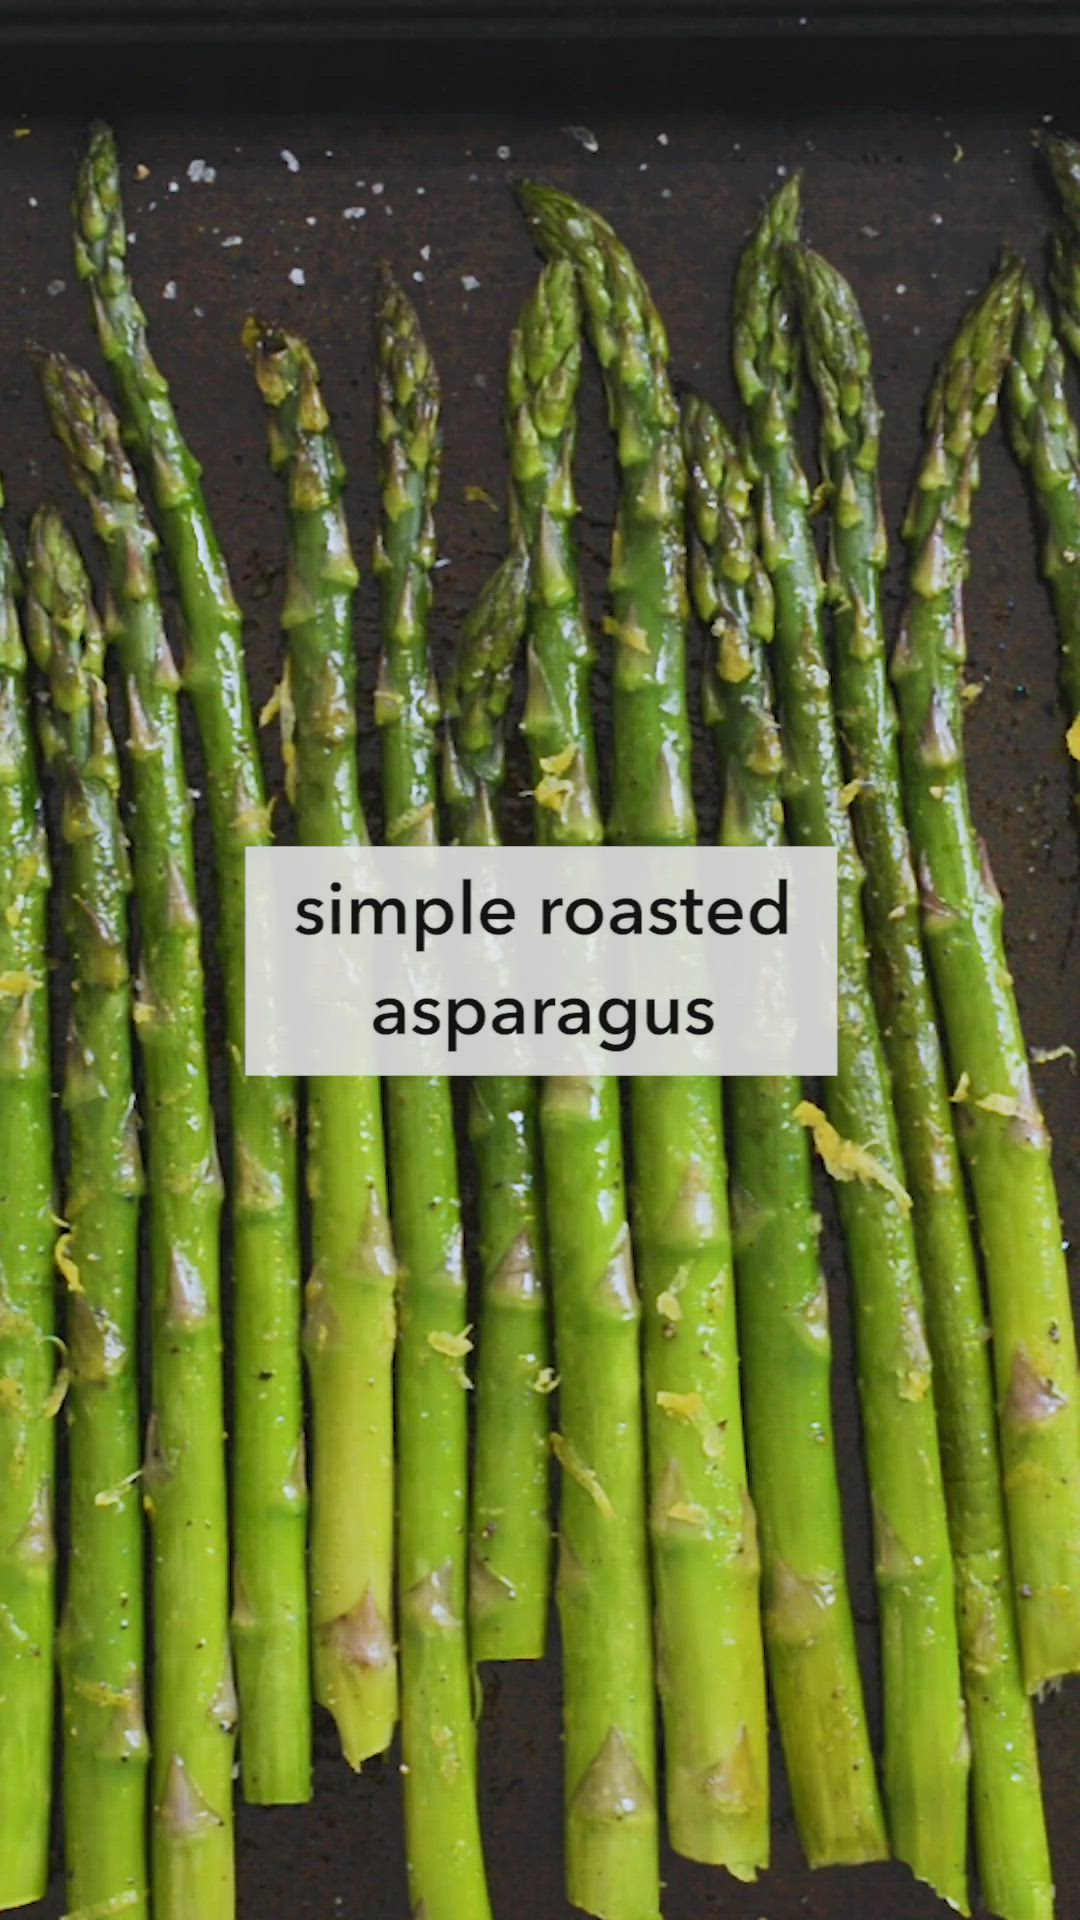 How To Roasted Asparagus Video Recipe Video Asparagus Recipes Baked Grilled Asparagus Recipes Roasted Asparagus